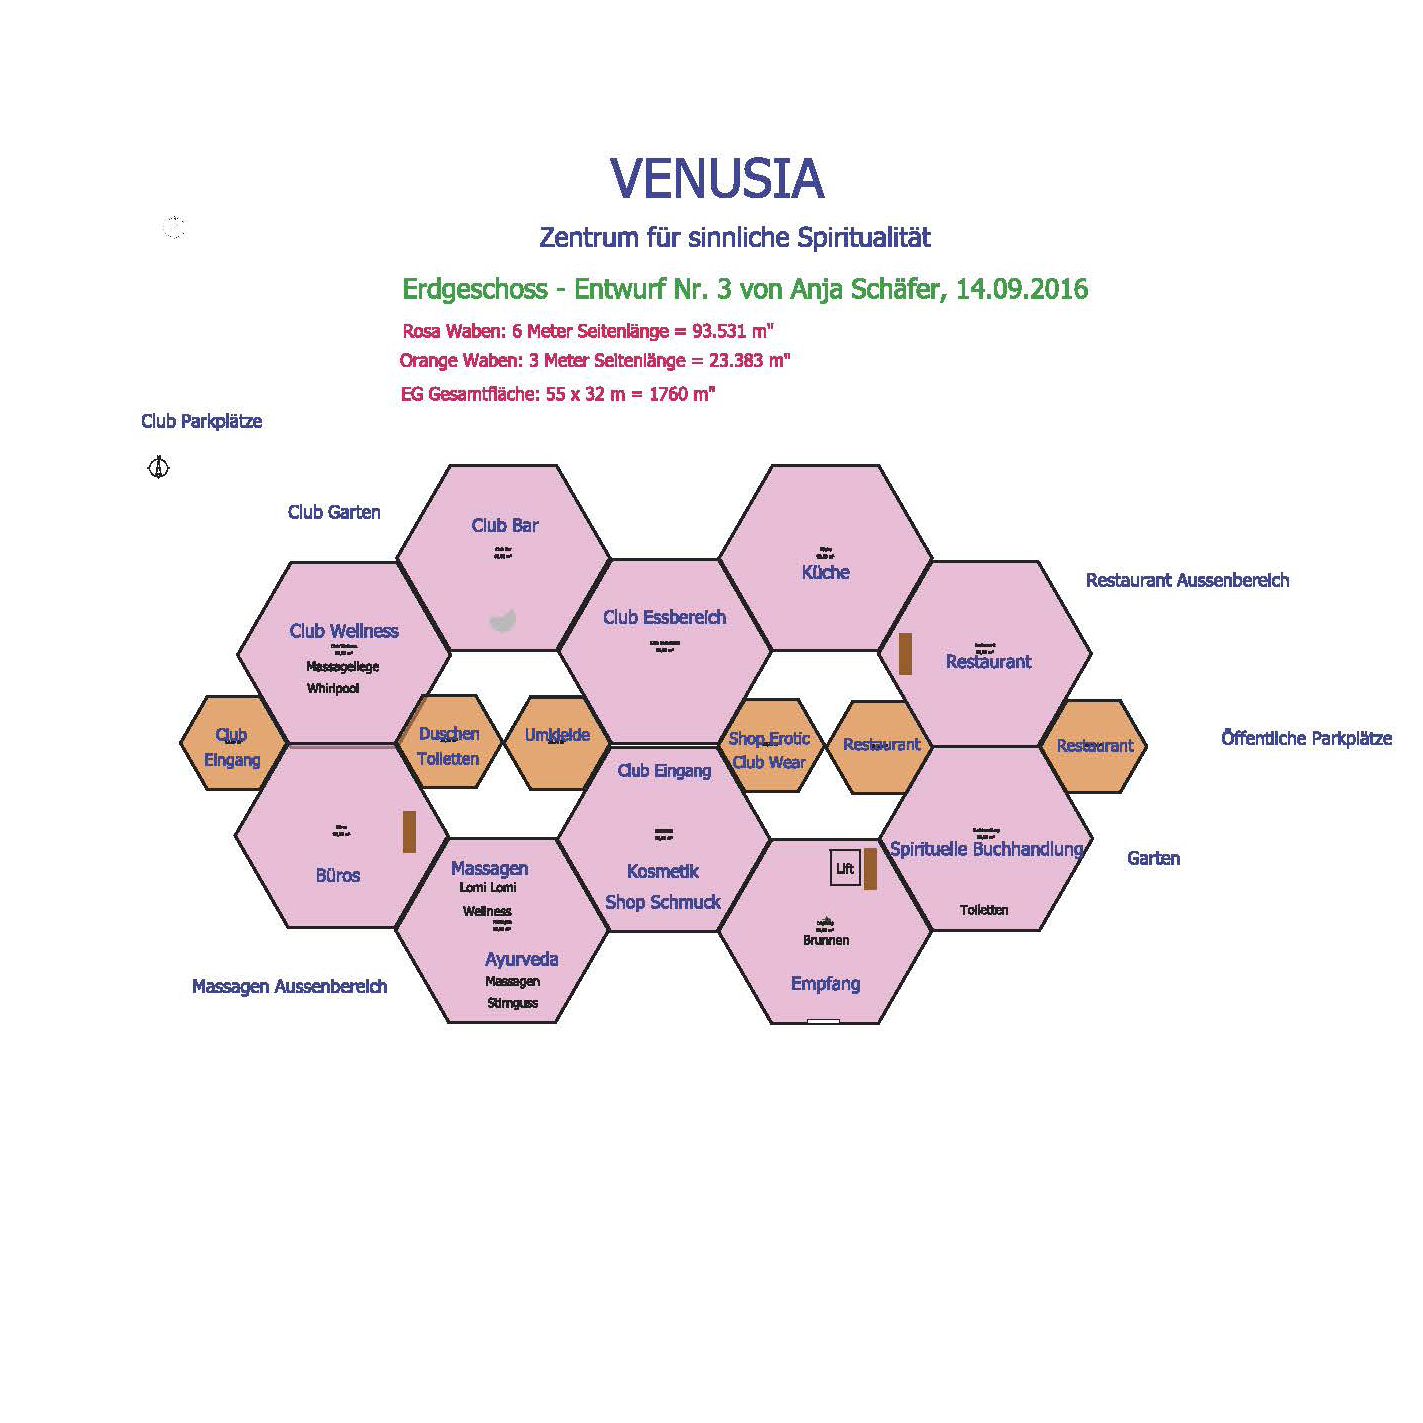 Venusia Center for Sensual Spirituality